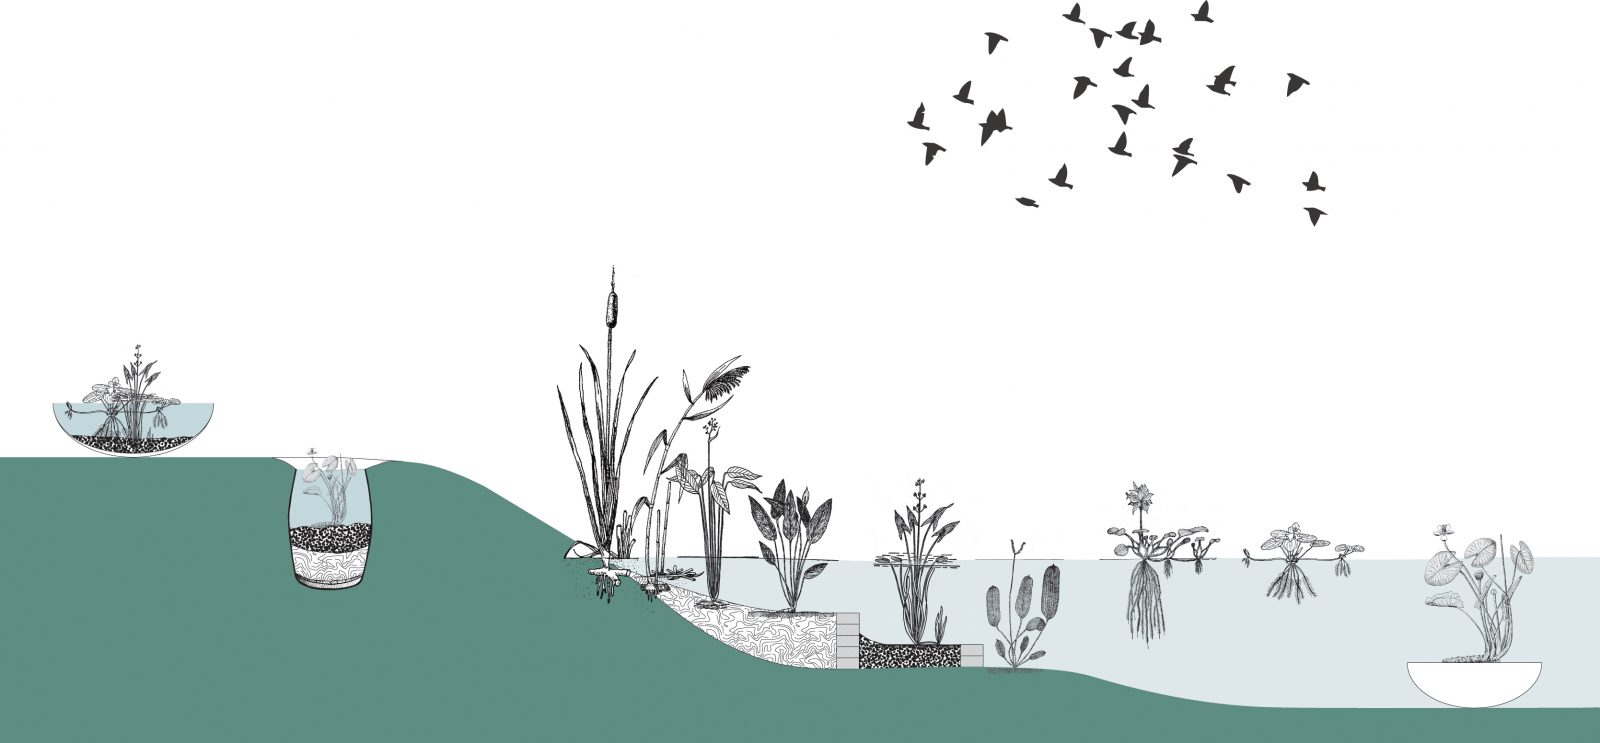 A cross section presenting the placement of aquatic plants in and outside a pond, Centrala 2020